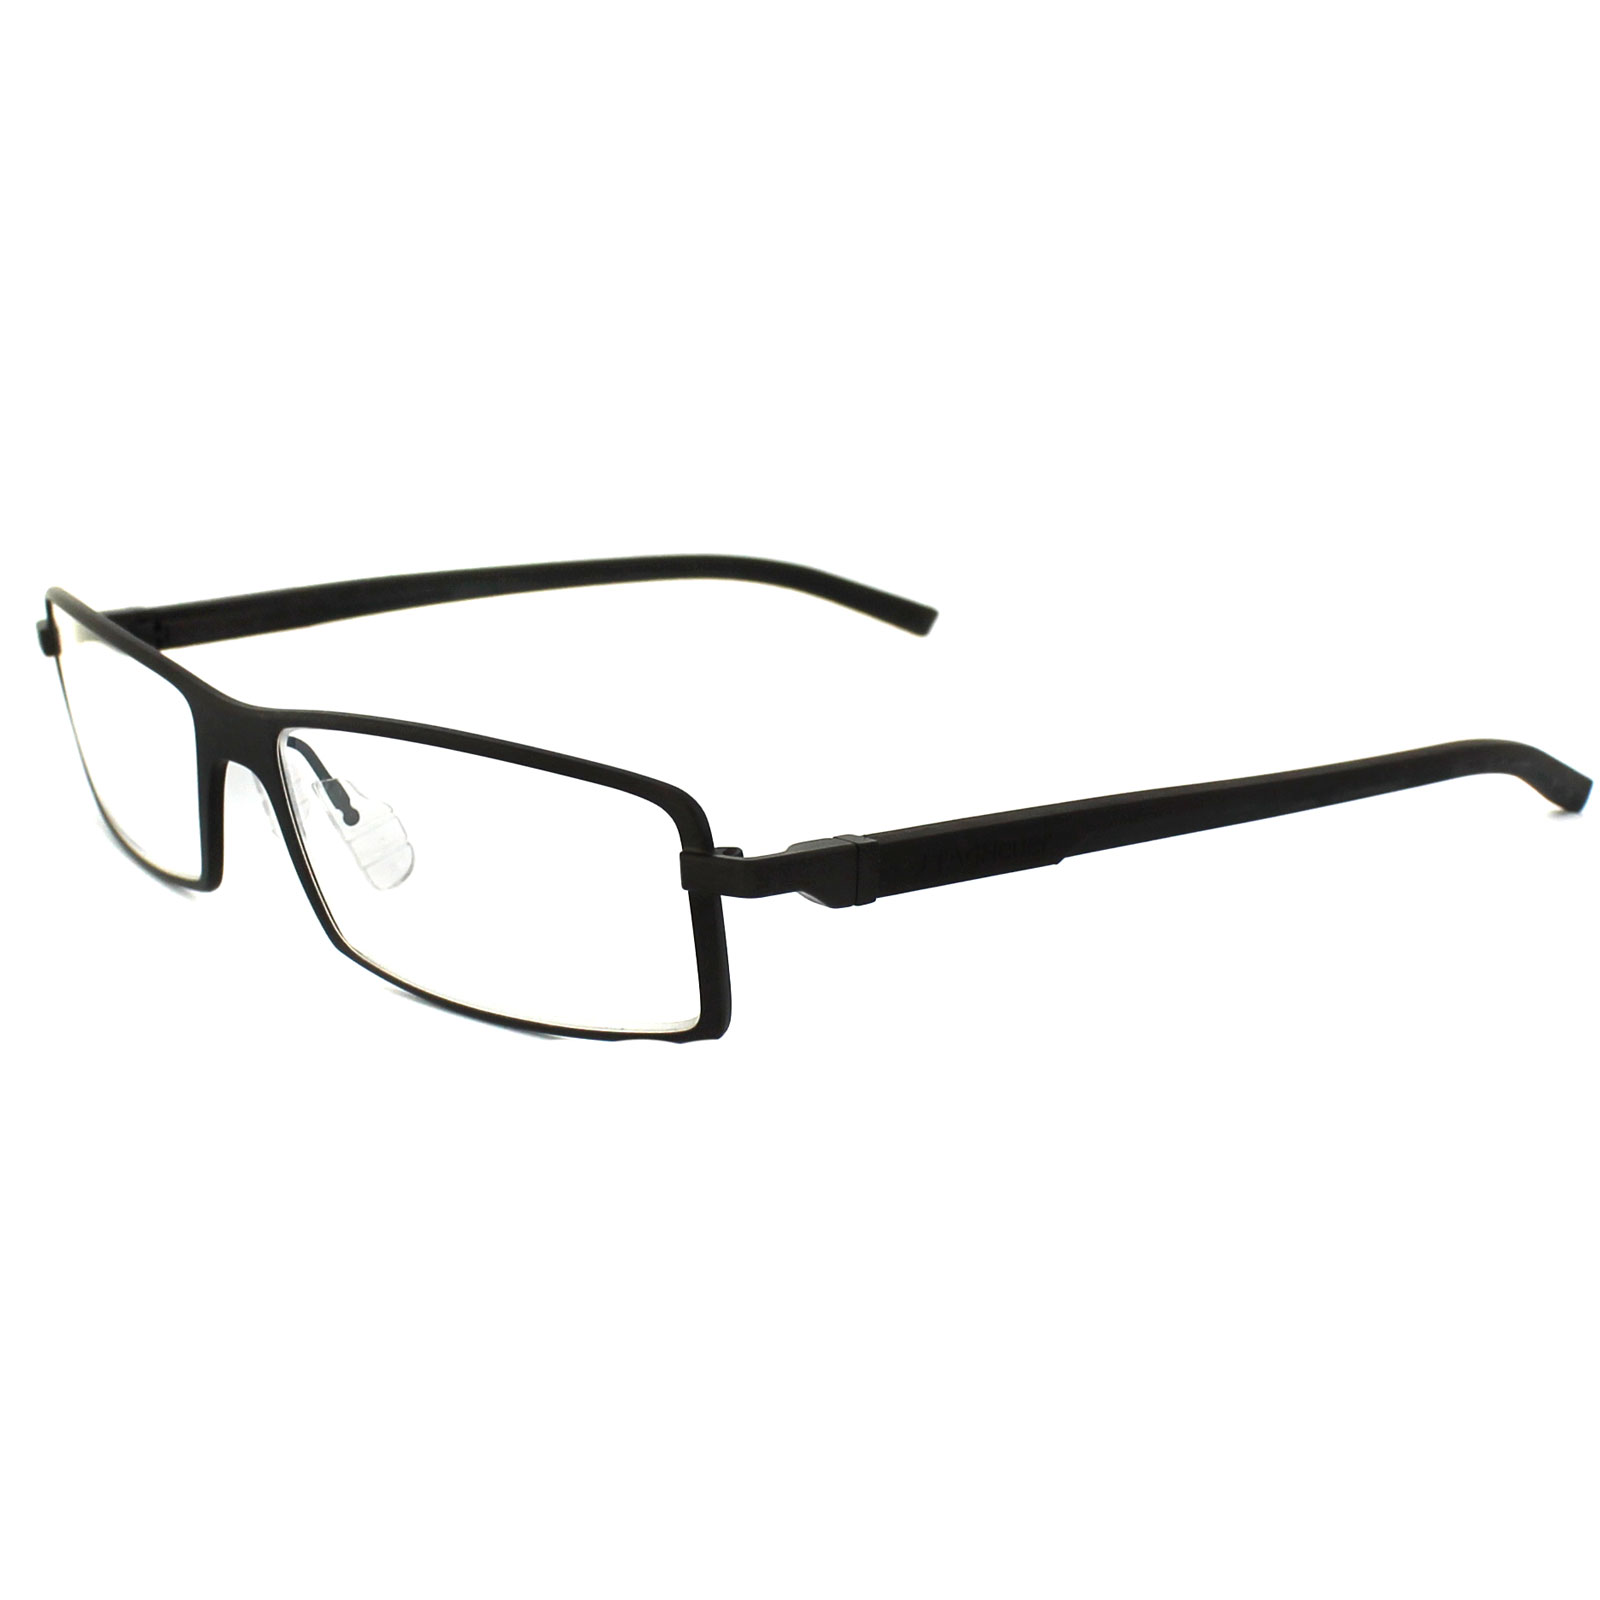 tag heuer glasses frames automatic 0802 003 matt chocolate